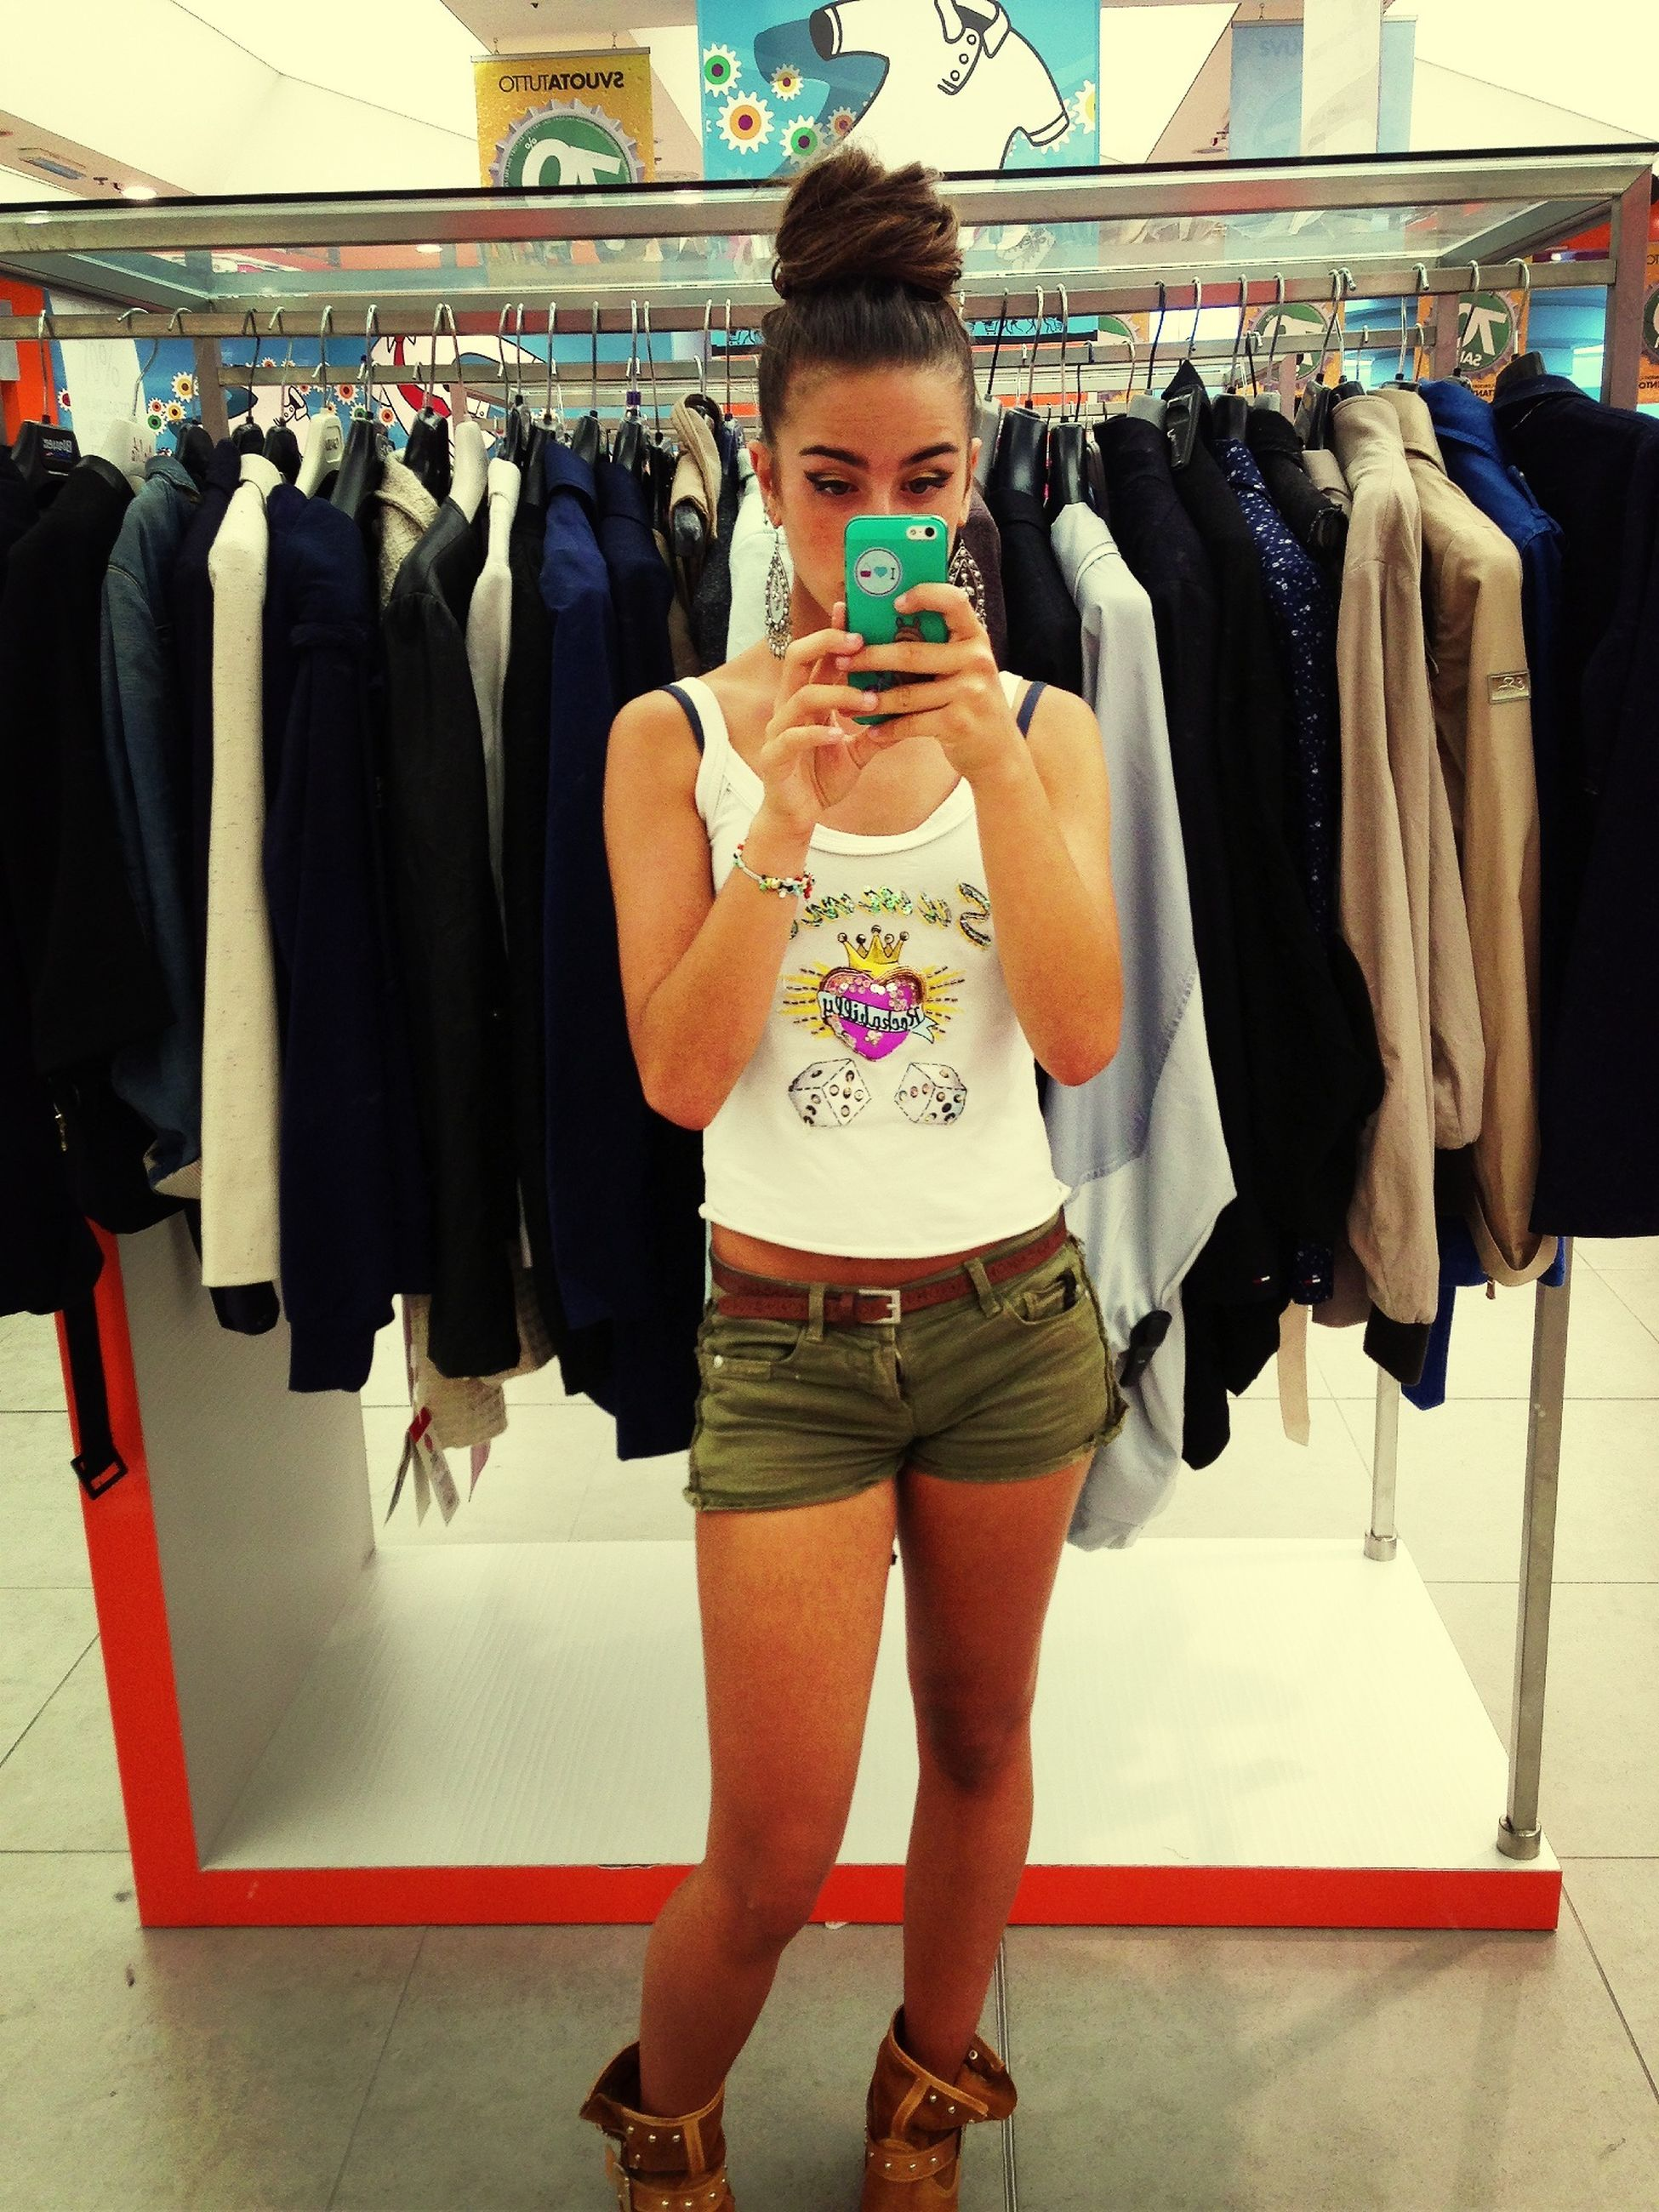 indoors, lifestyles, casual clothing, standing, leisure activity, front view, young adult, person, full length, fashion, three quarter length, young women, smiling, togetherness, portrait, looking at camera, shopping